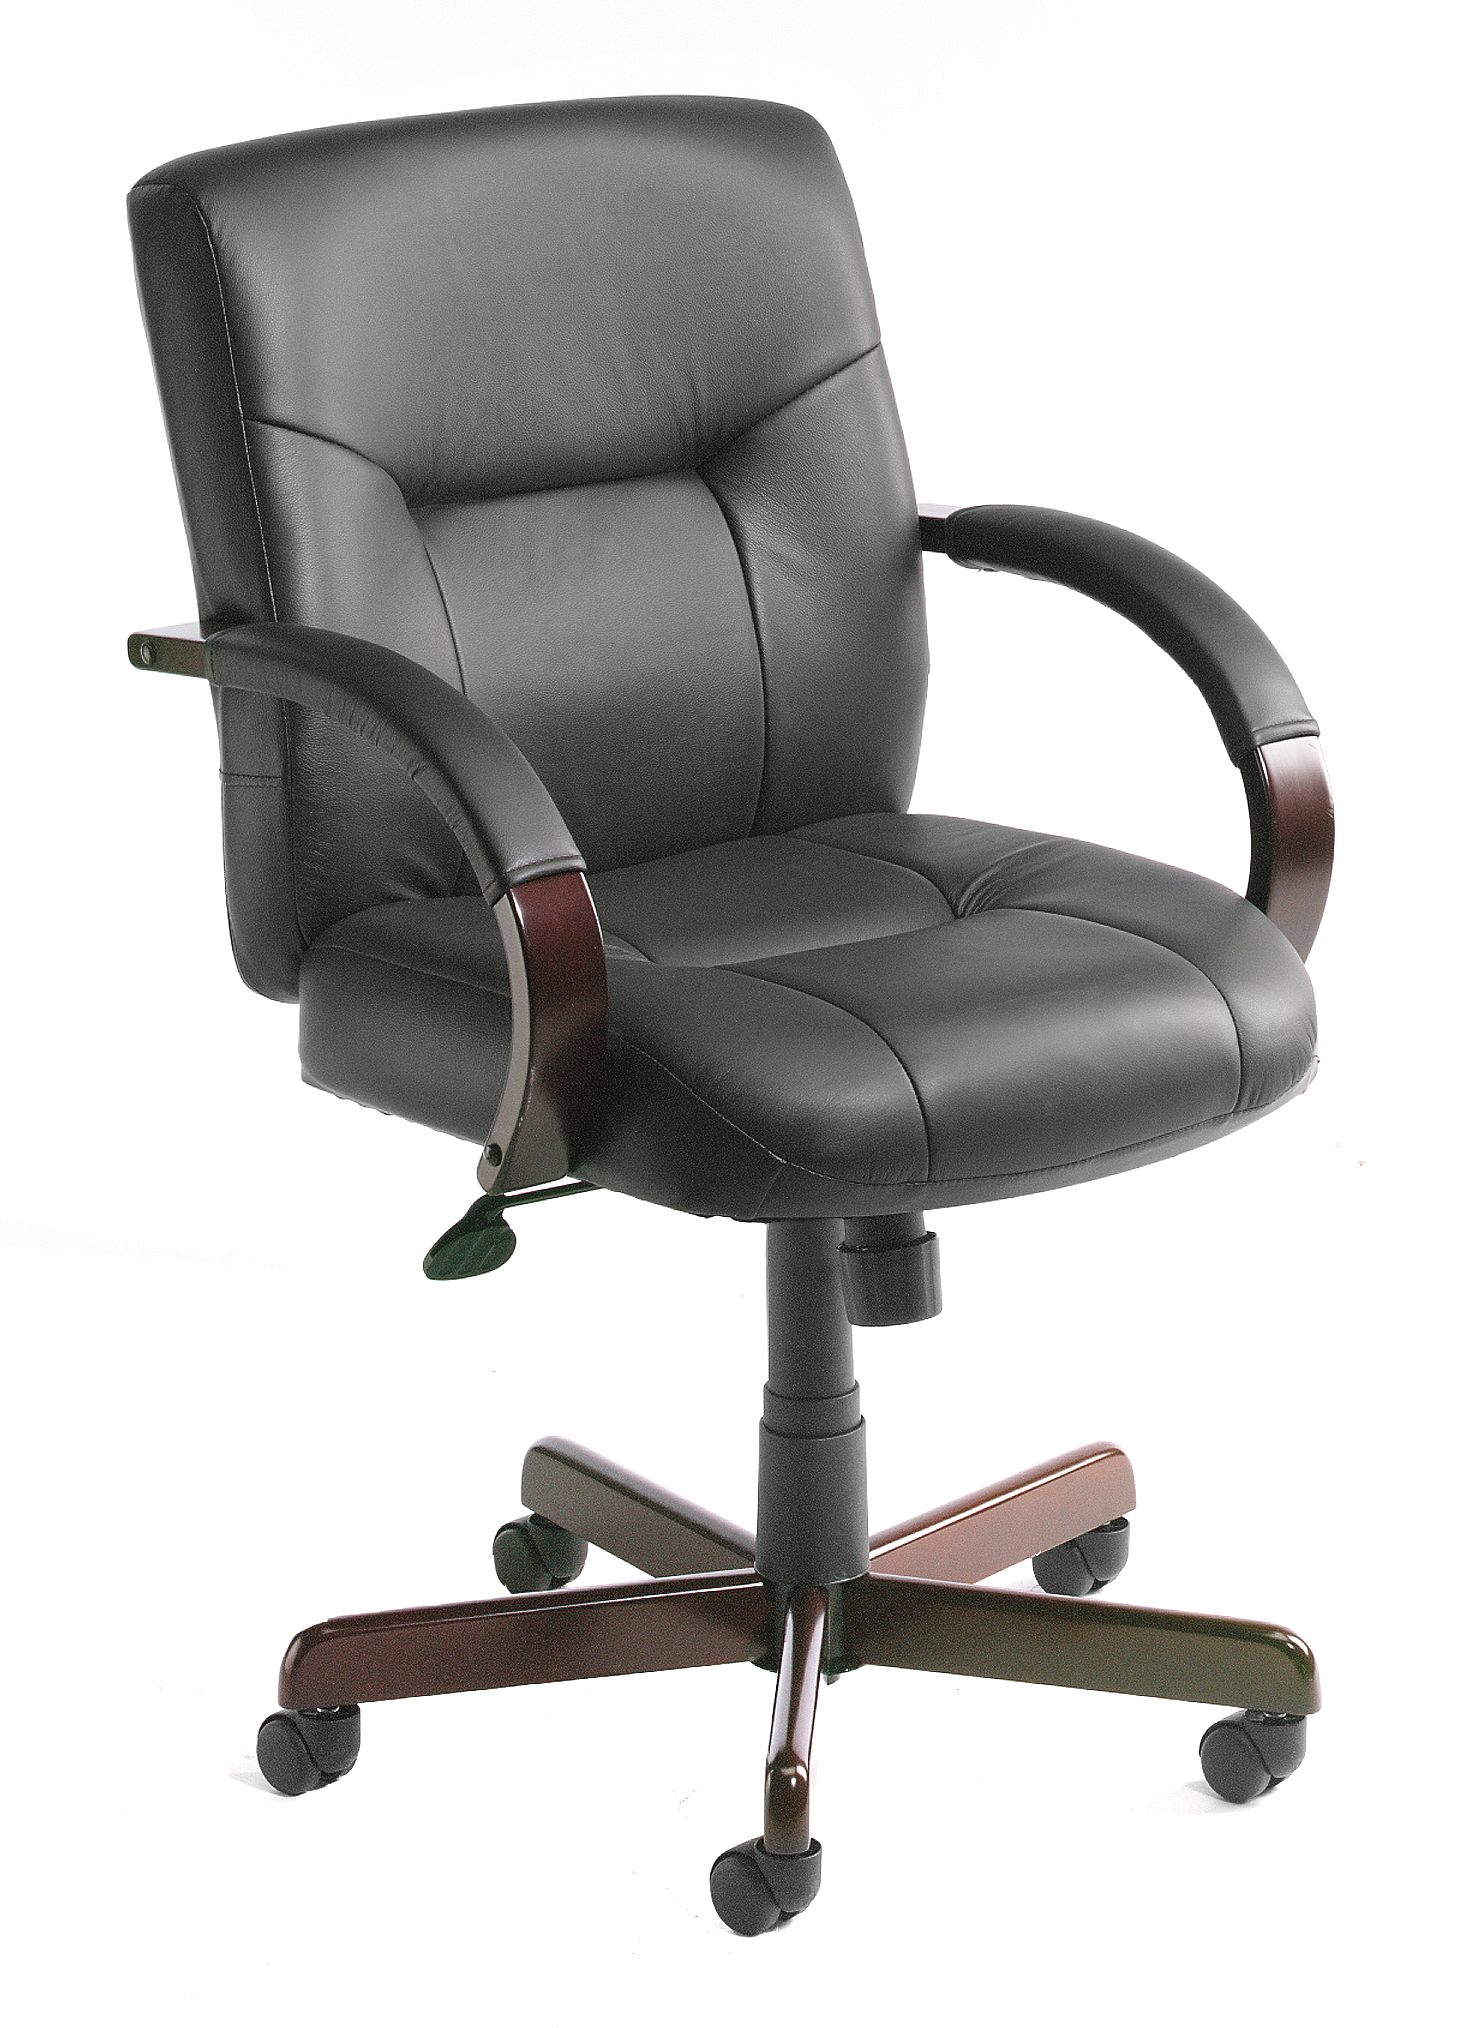 Chair | Free Images at Clker.com - vector clip art online ...